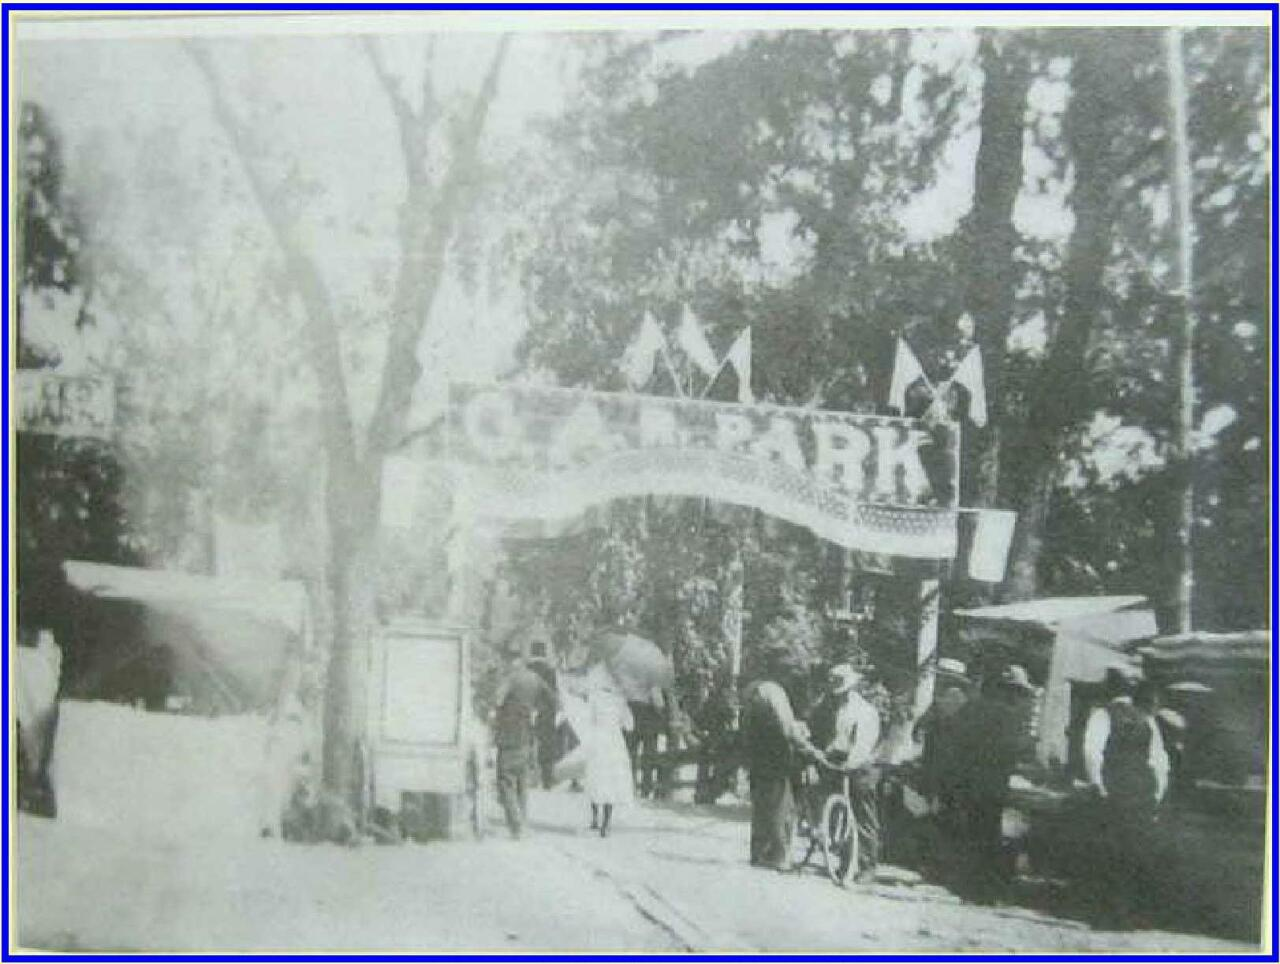 The entrance to GAR Island Park in 1915